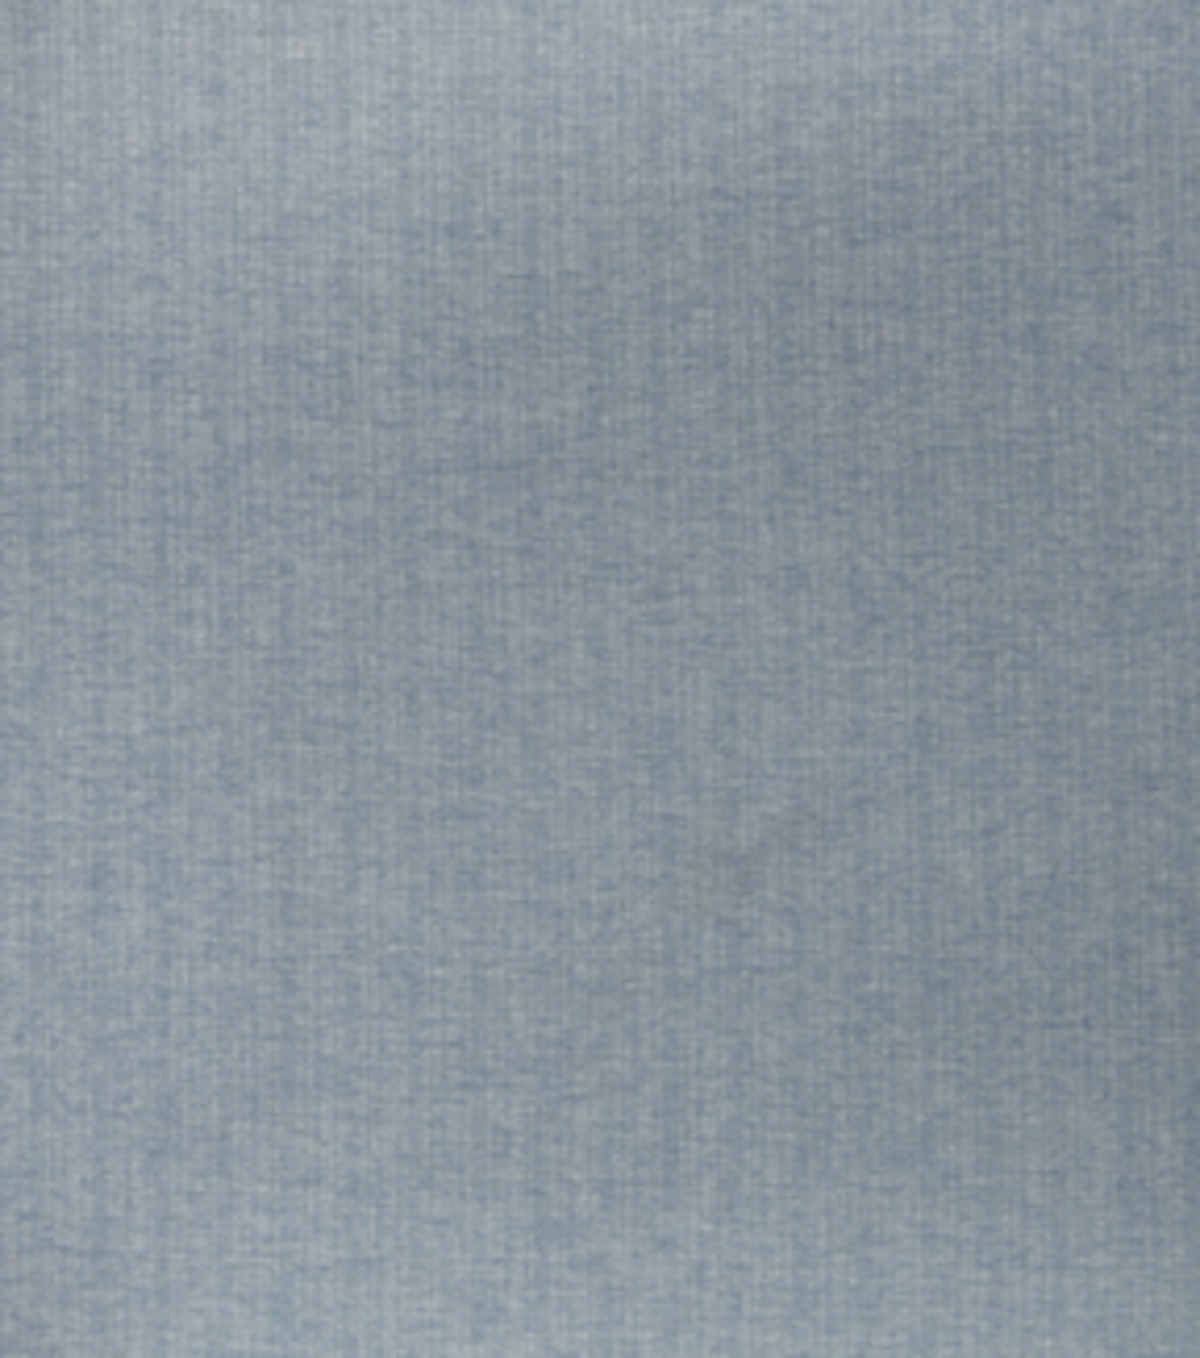 Home Decor 8\u0022x8\u0022 Fabric Swatch-SMC Designs Crayon / Lake